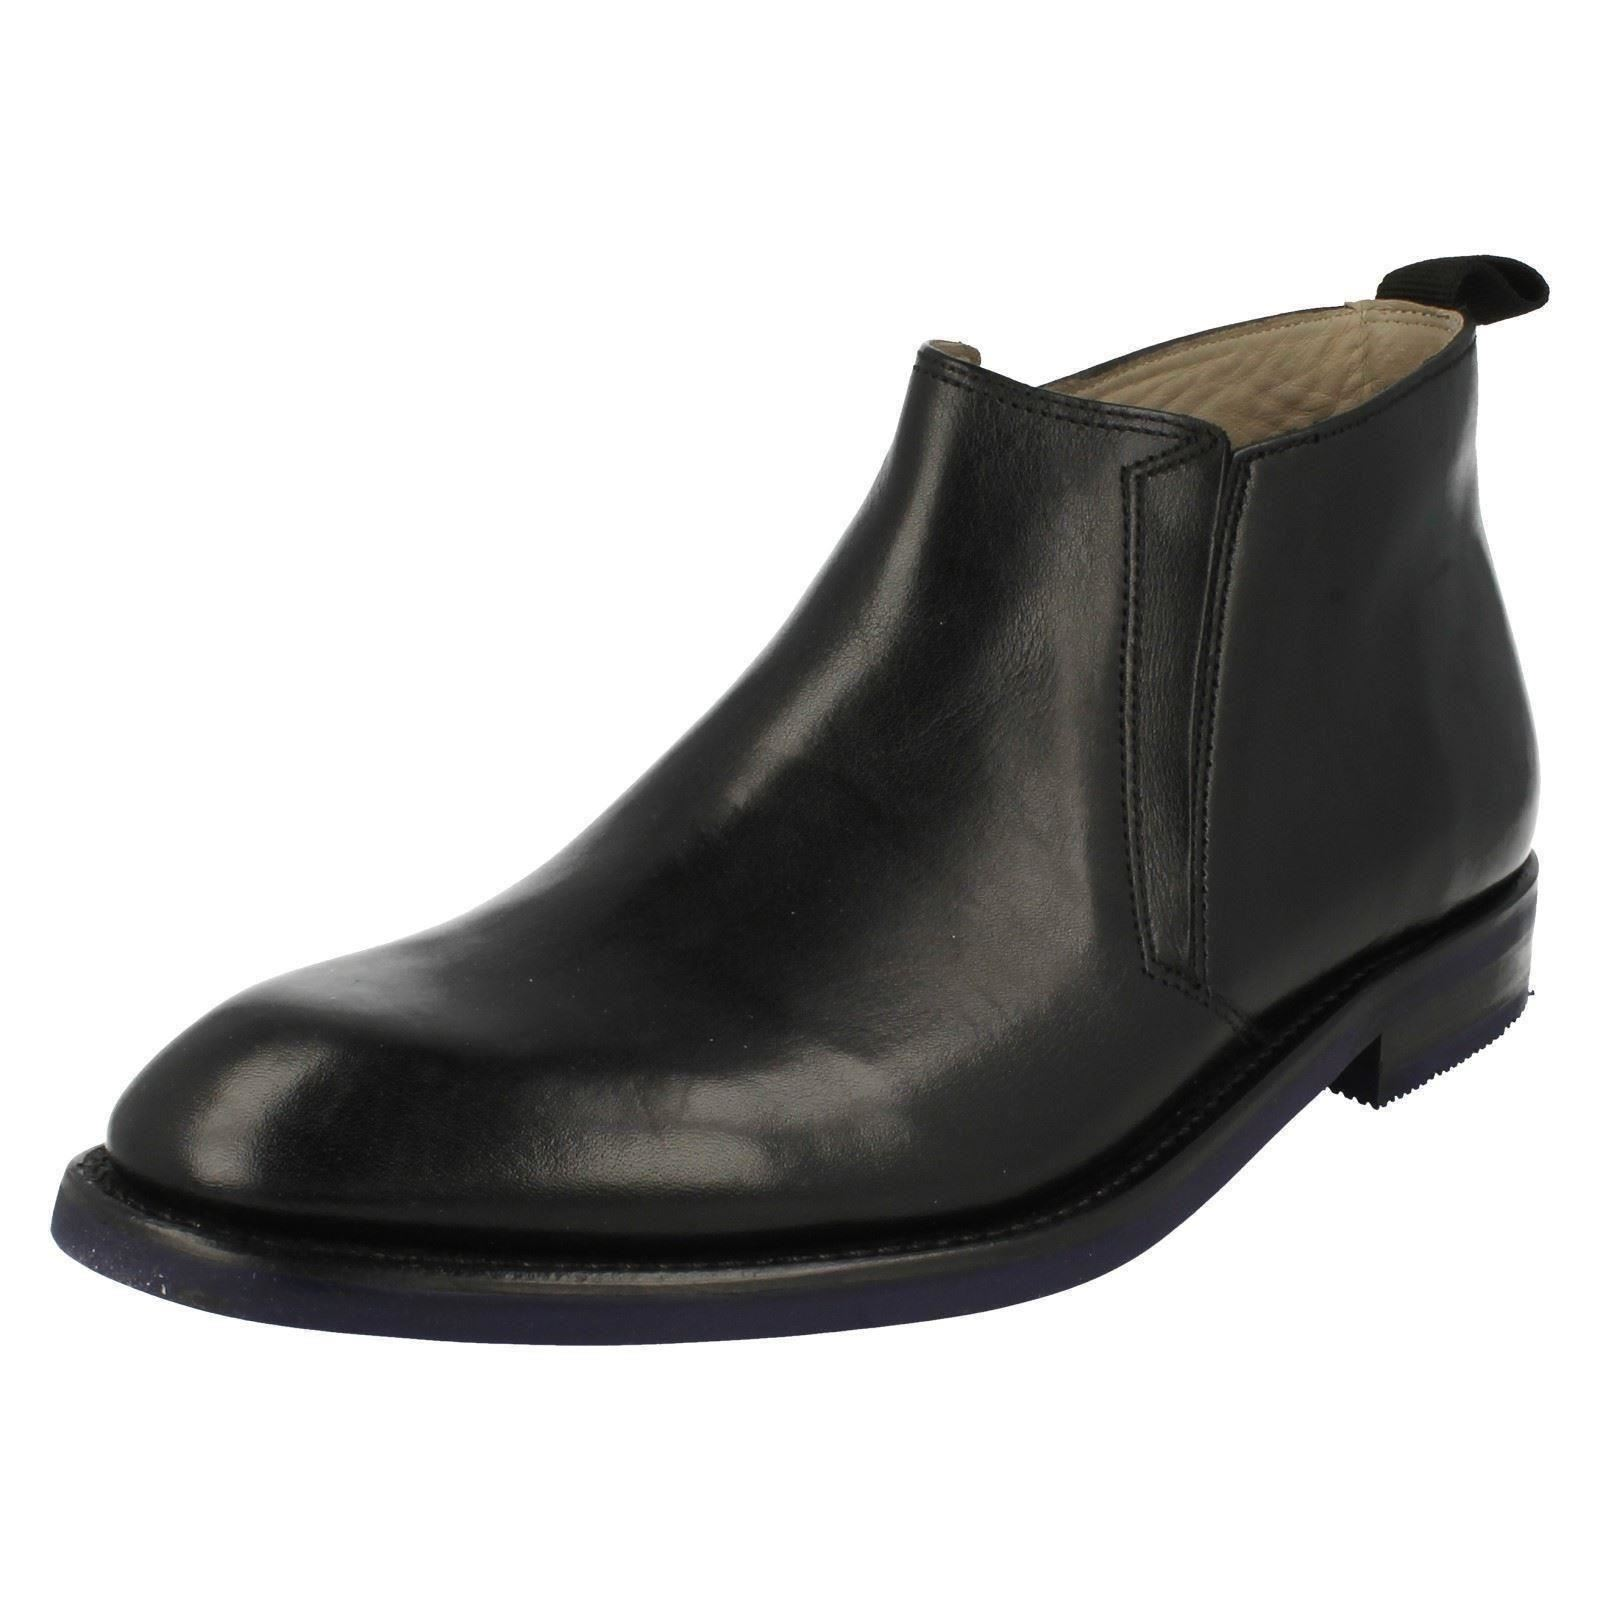 Men's Clarks Label Formal Pull On Boots Label Clarks - Swinley Mid a7e5bf